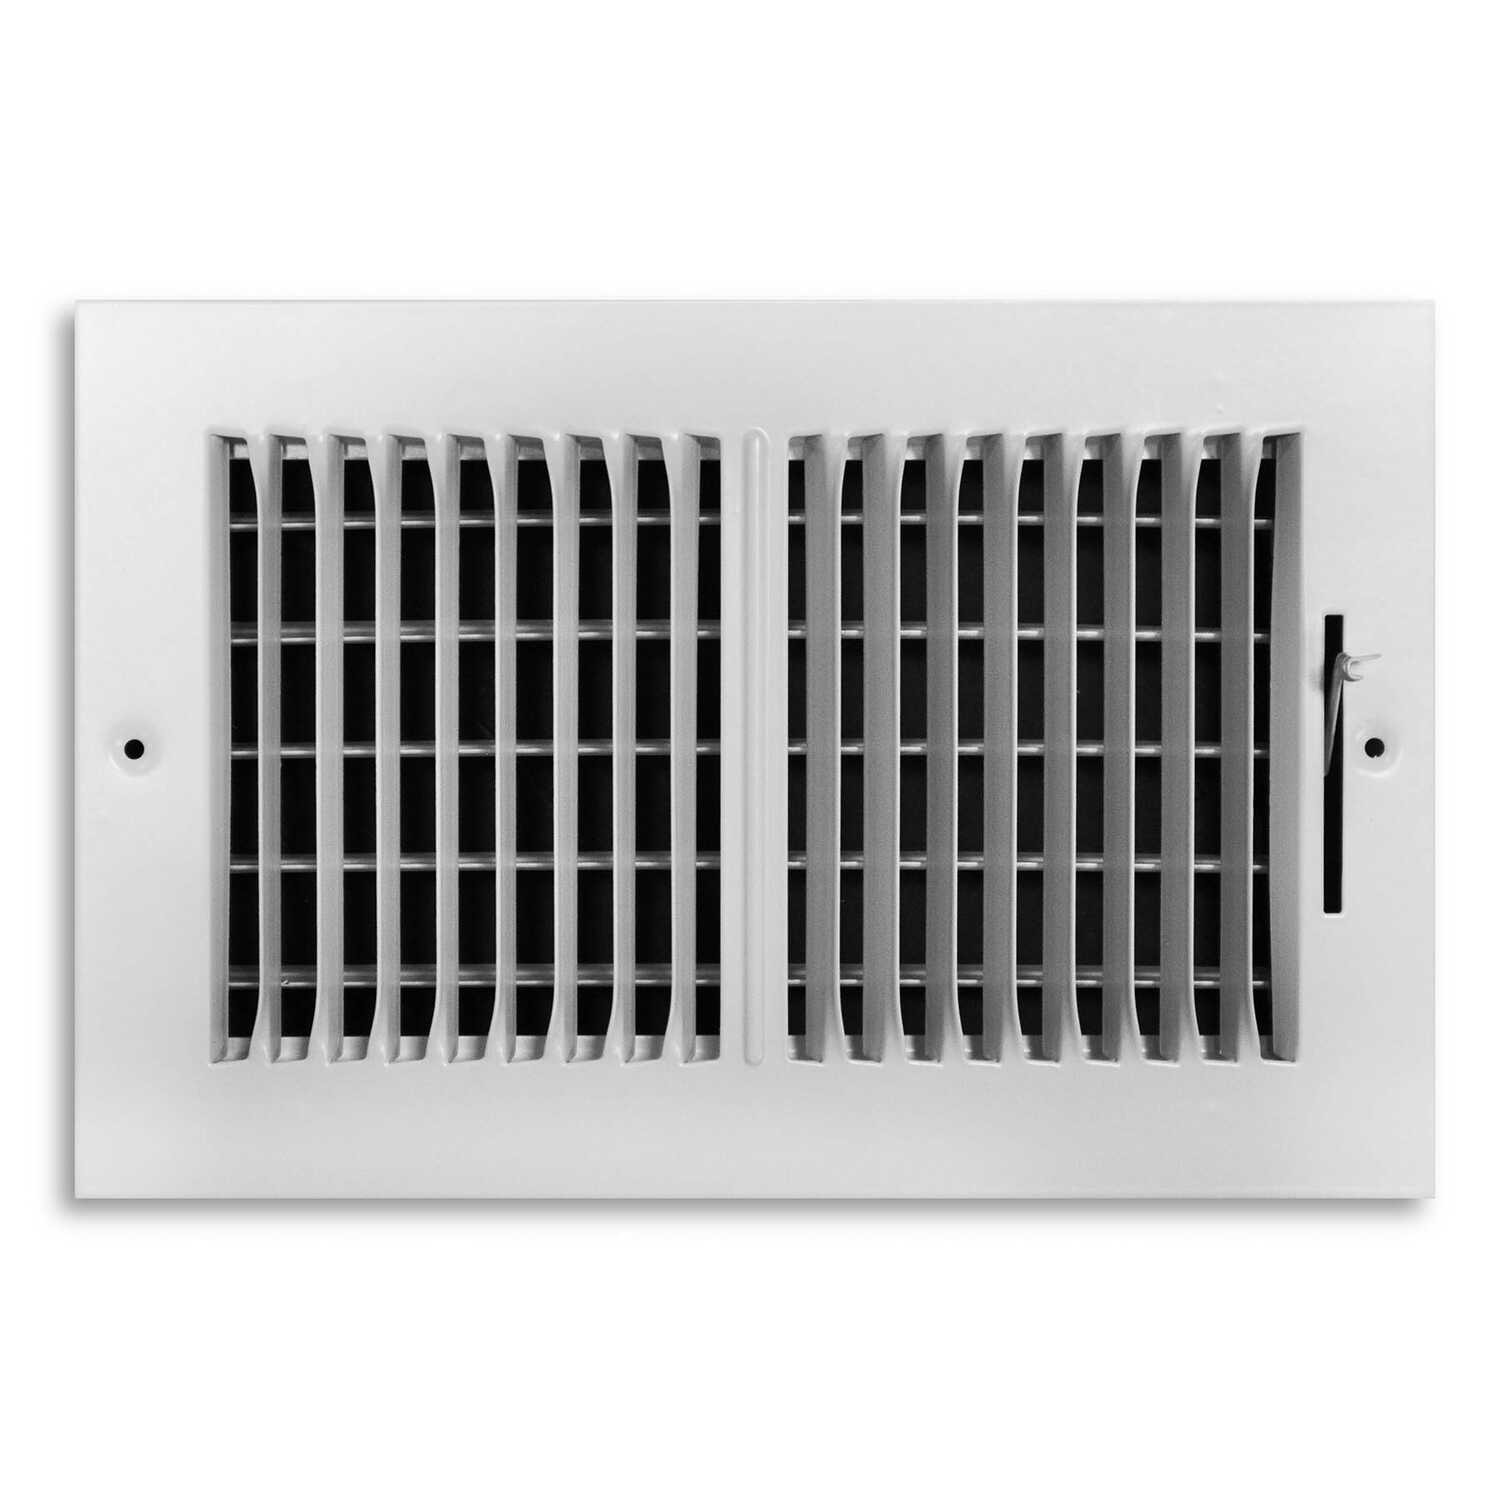 Tru Aire  6 in. H x 1-11/16 in. D 2-Way  Powder Coat  White  Steel  Return Air Grille